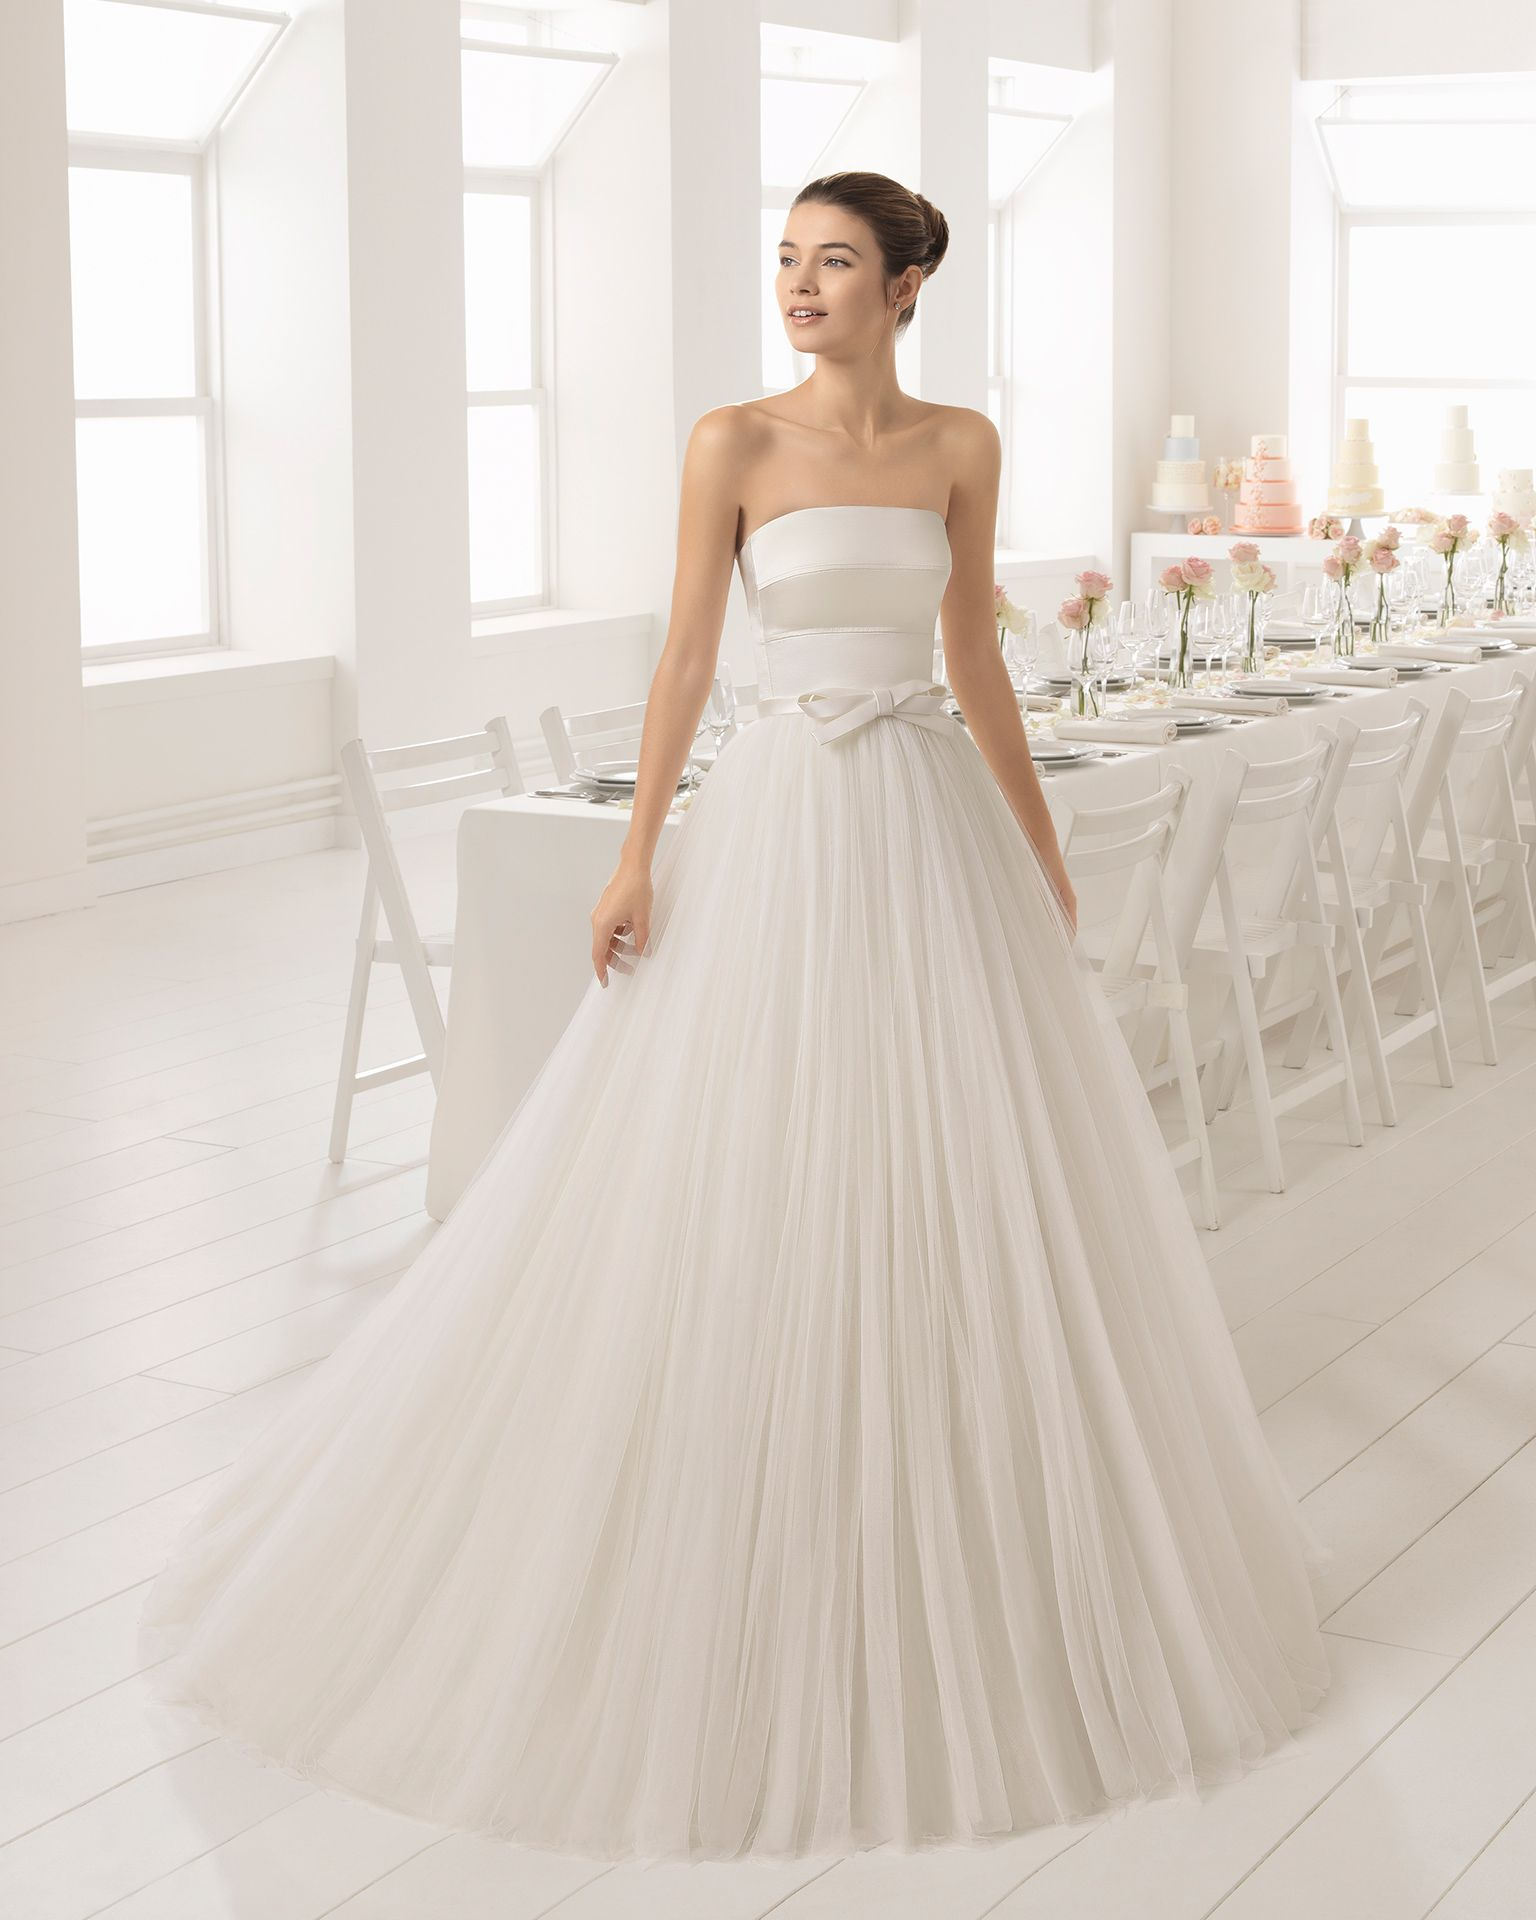 A Line Tulle And Duchess Satin Strapless Wedding Dress With Bow At Waist.  2018